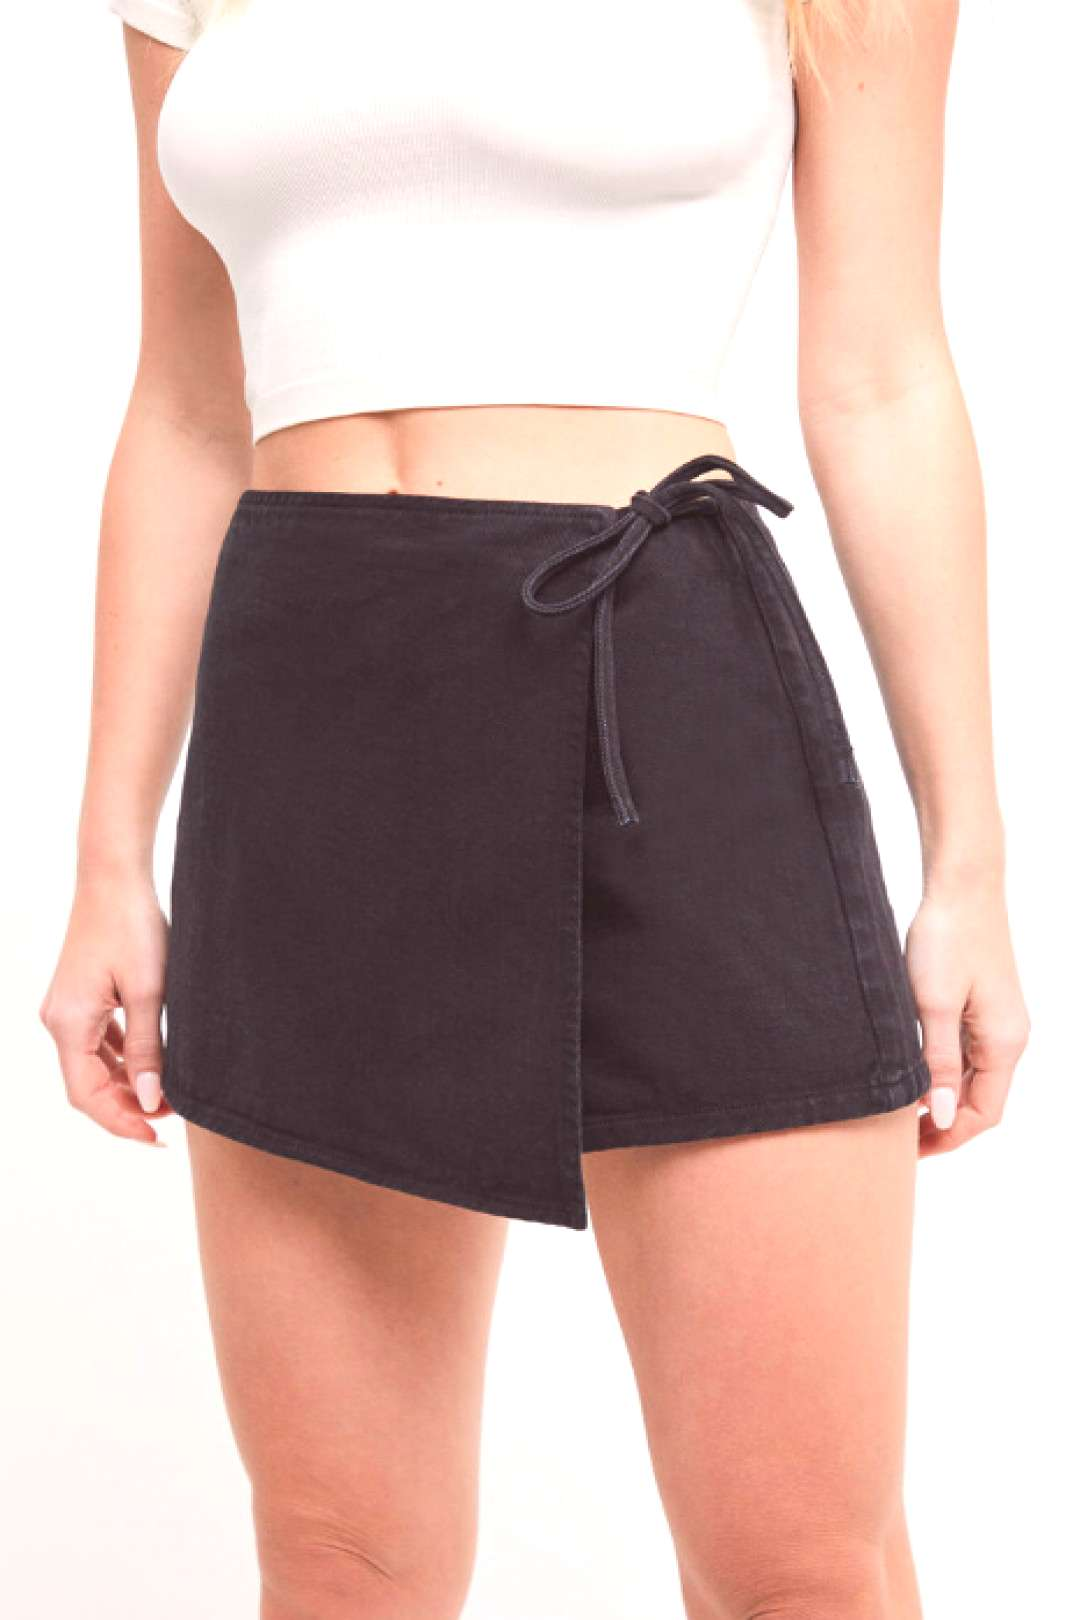 PacSun Carbon Black Wrap Skort PacSun Carbon Black Wrap Skort - Rock out all night long in the Car